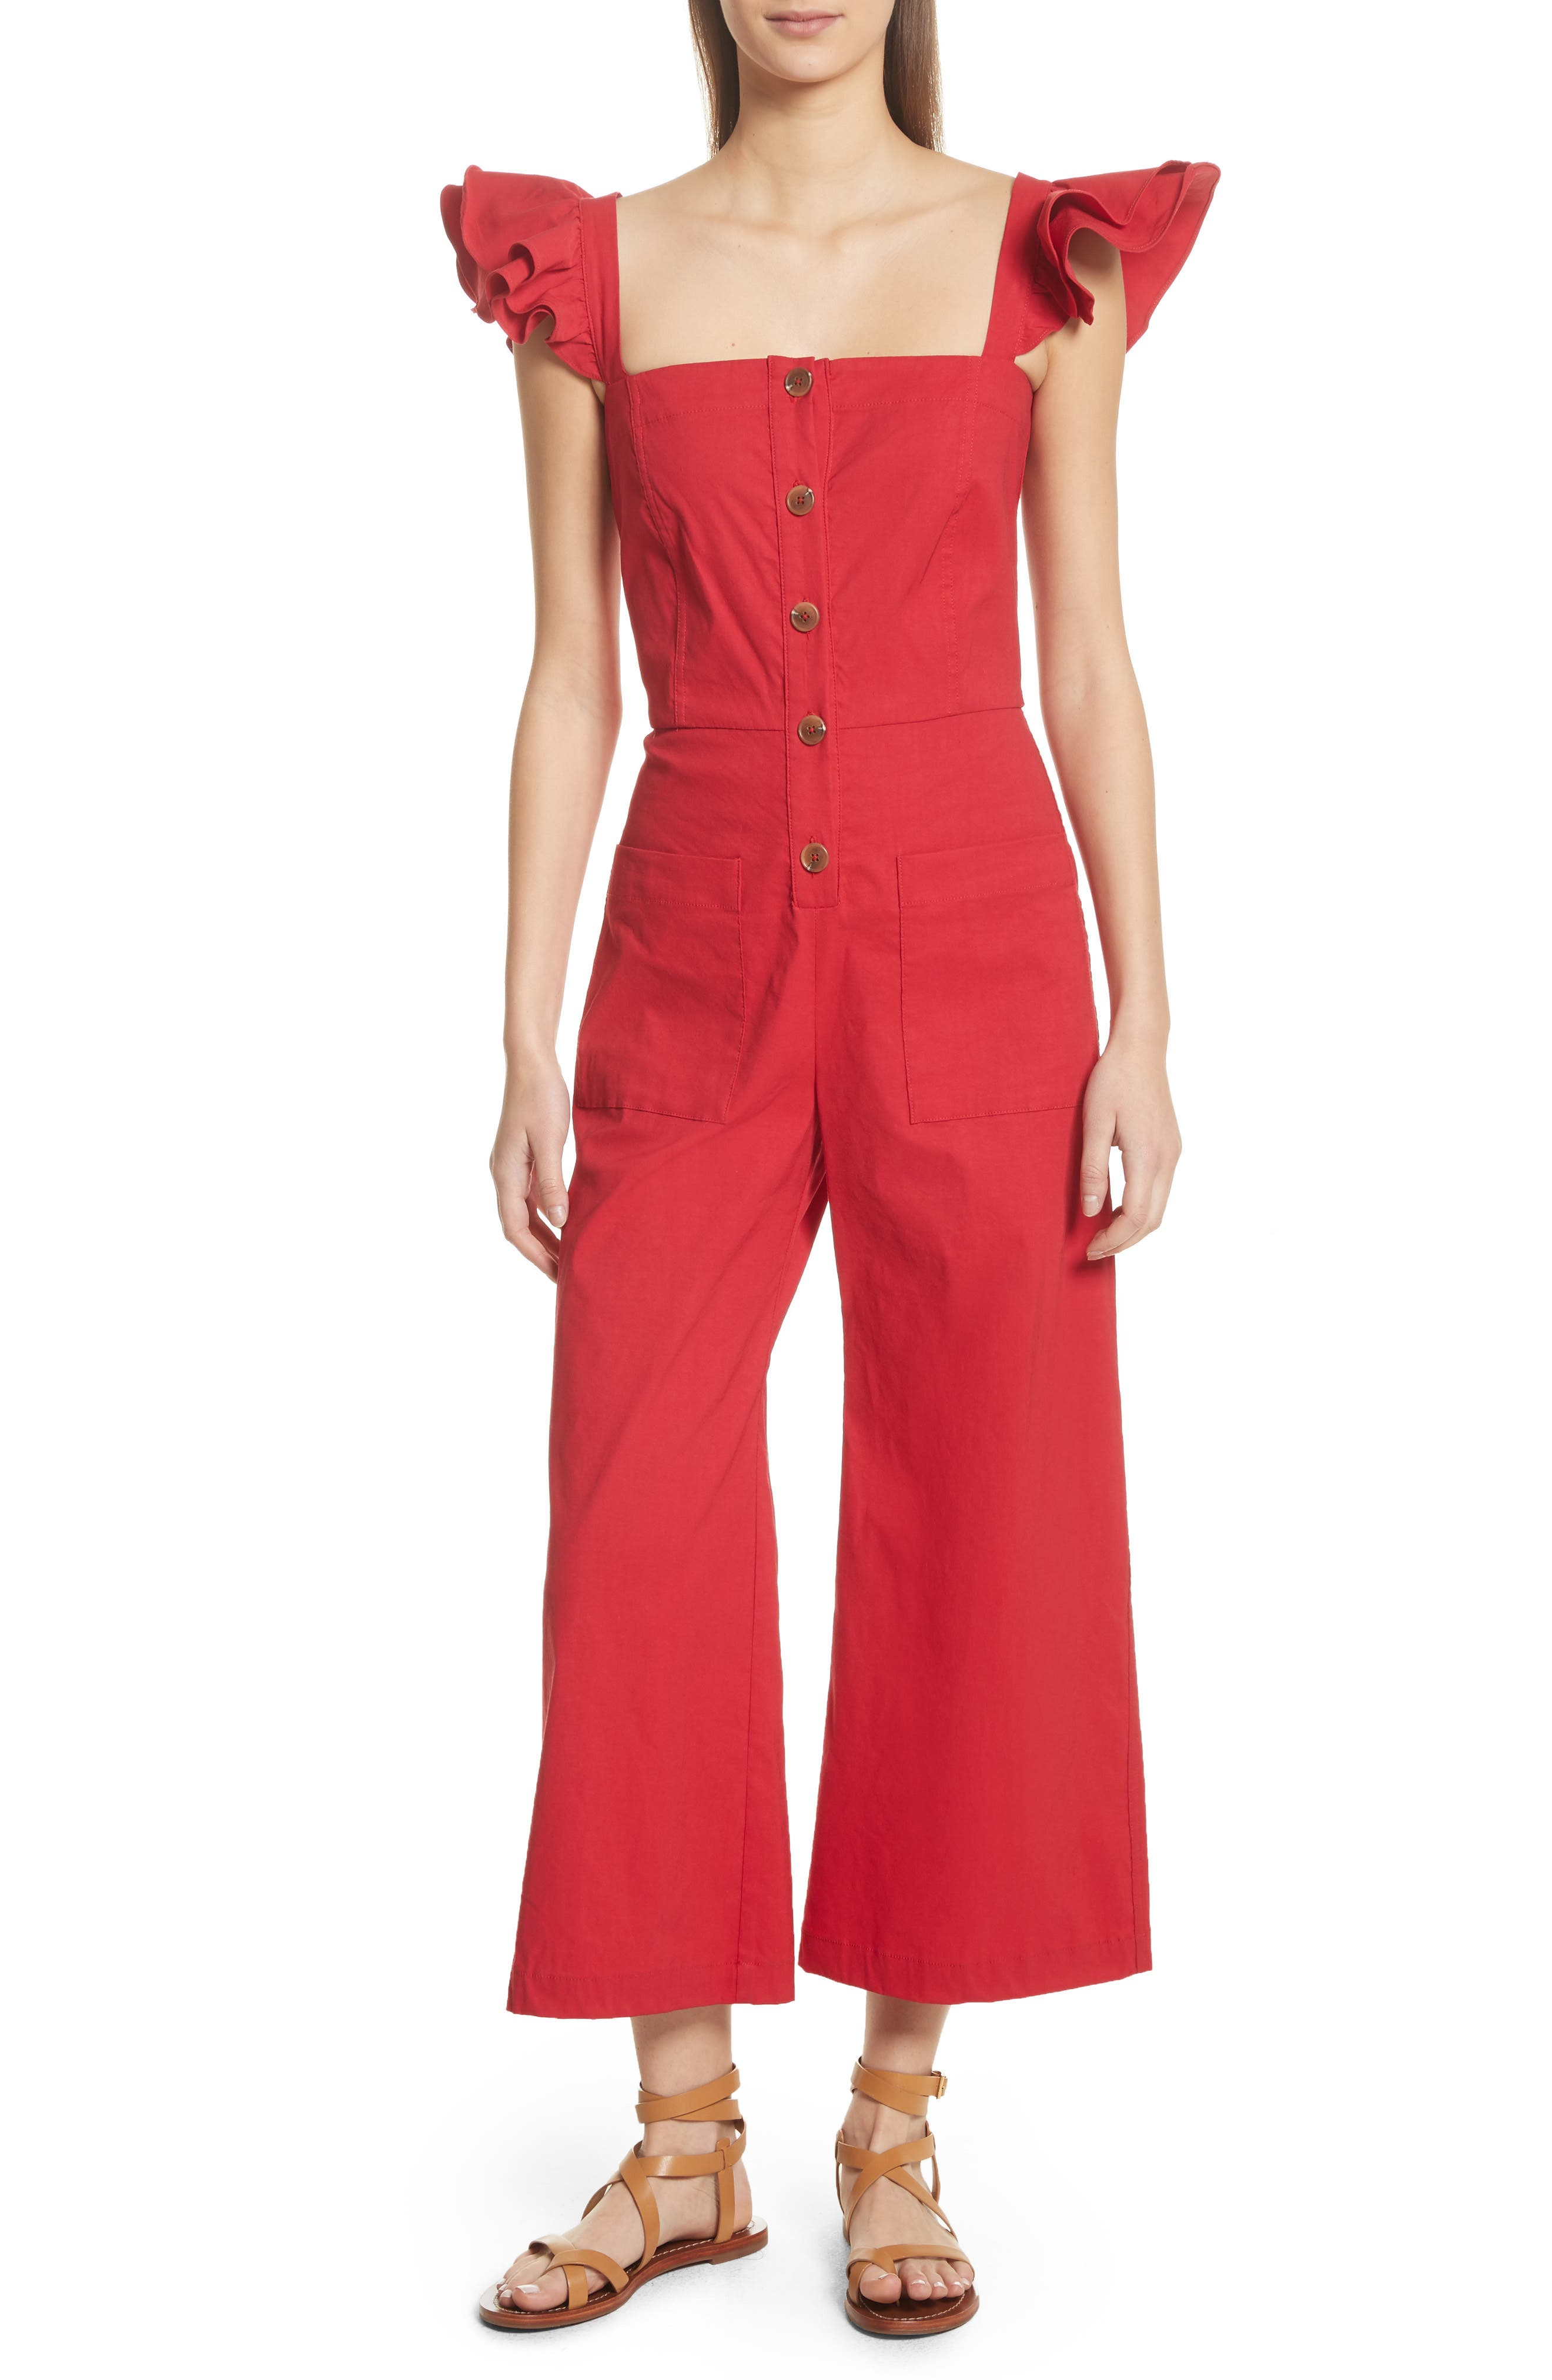 Callie Ruffle Strap Jumpsuit,                         Main,                         color, Red